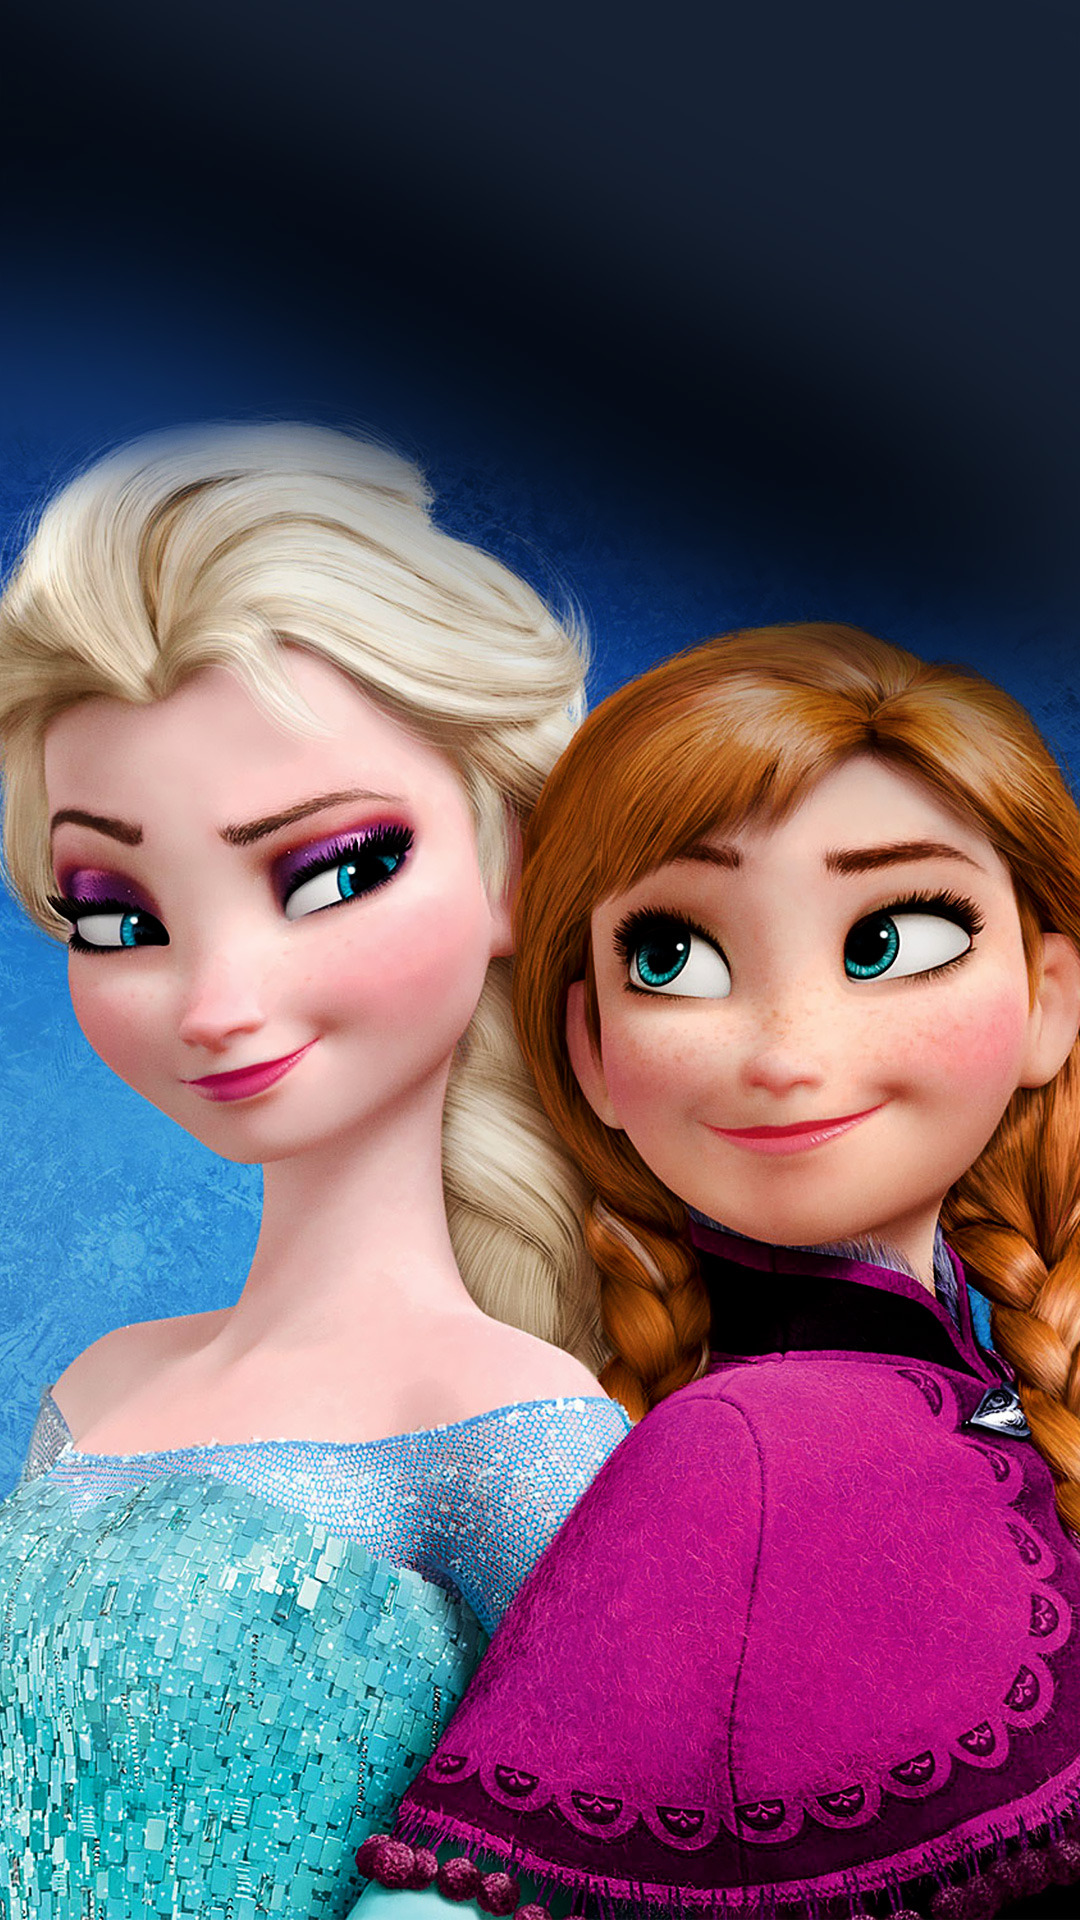 Cute Girly Live Wallpapers For Android Download Frozen Wallpaper Anna And Elsa Gallery